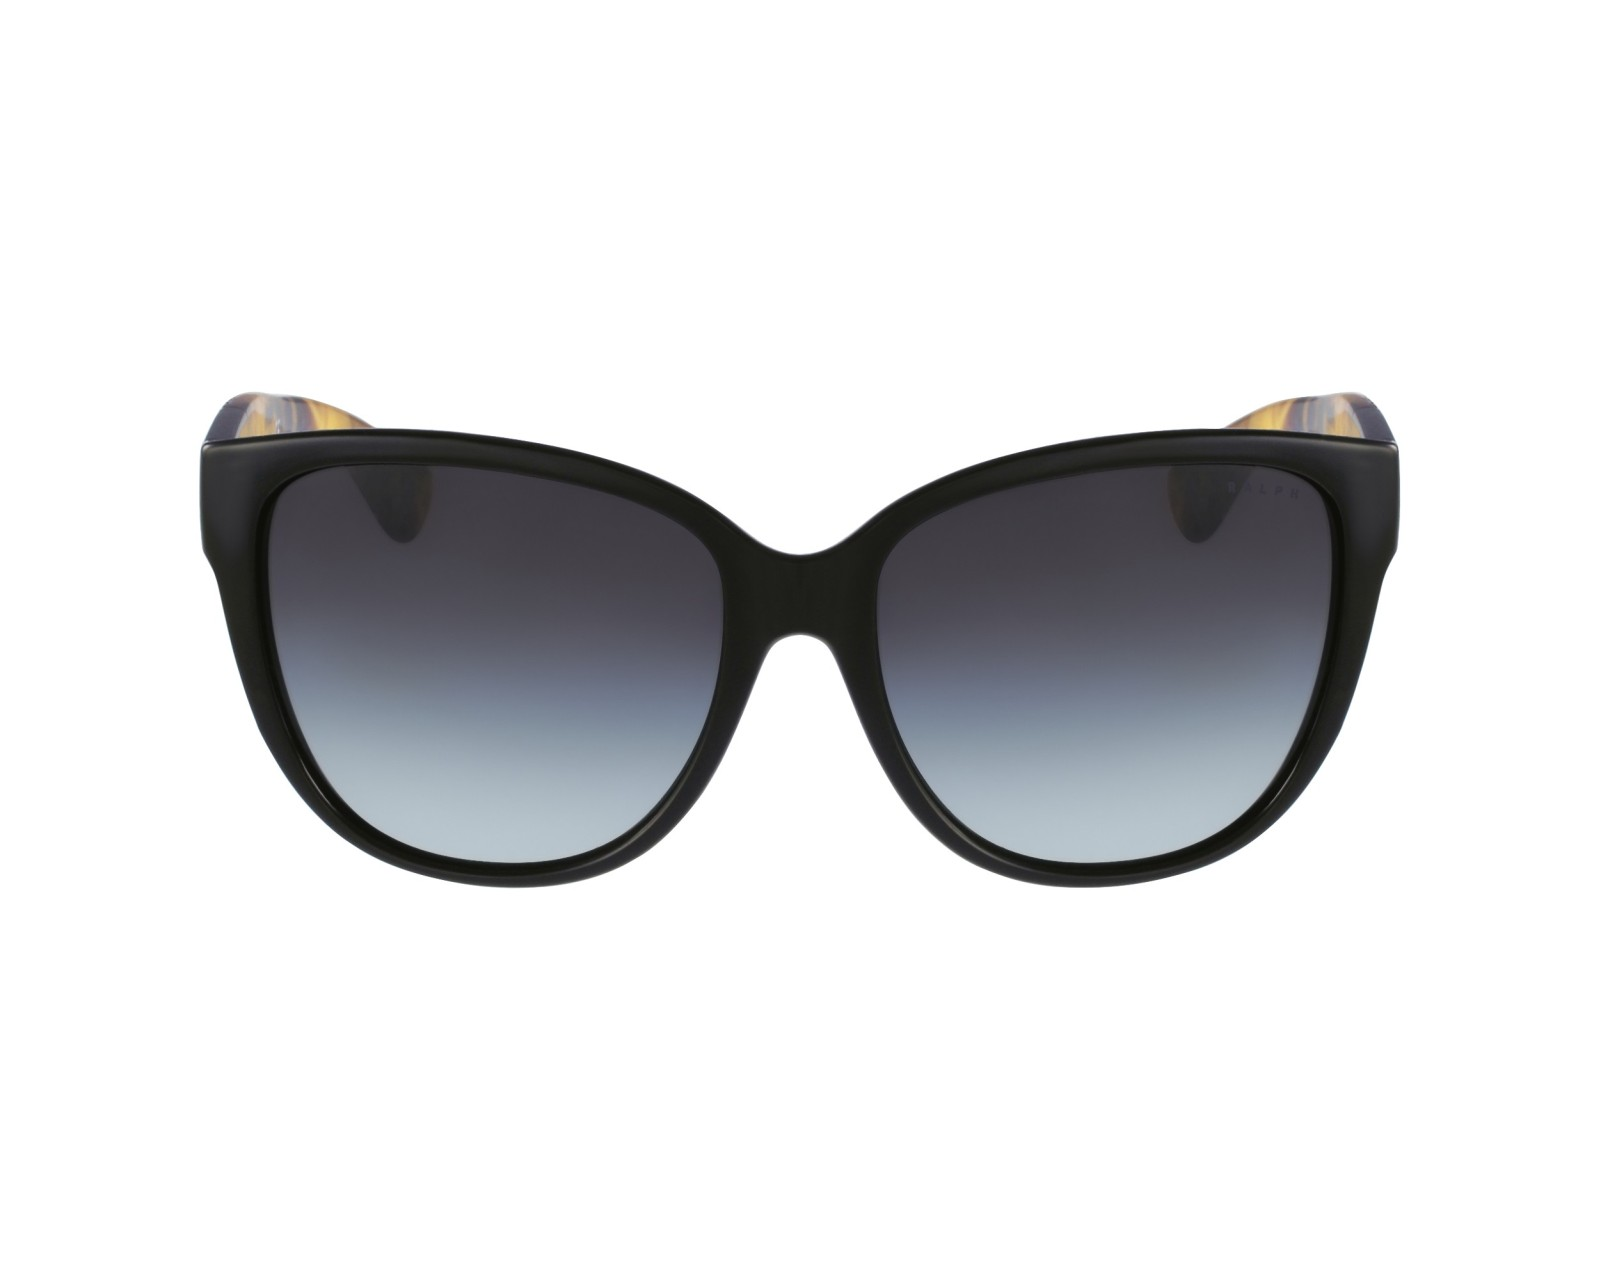 Ralph Lauren Sunglasses  ralph by ralph lauren sunglasses ra5181 501 11 57 visionet